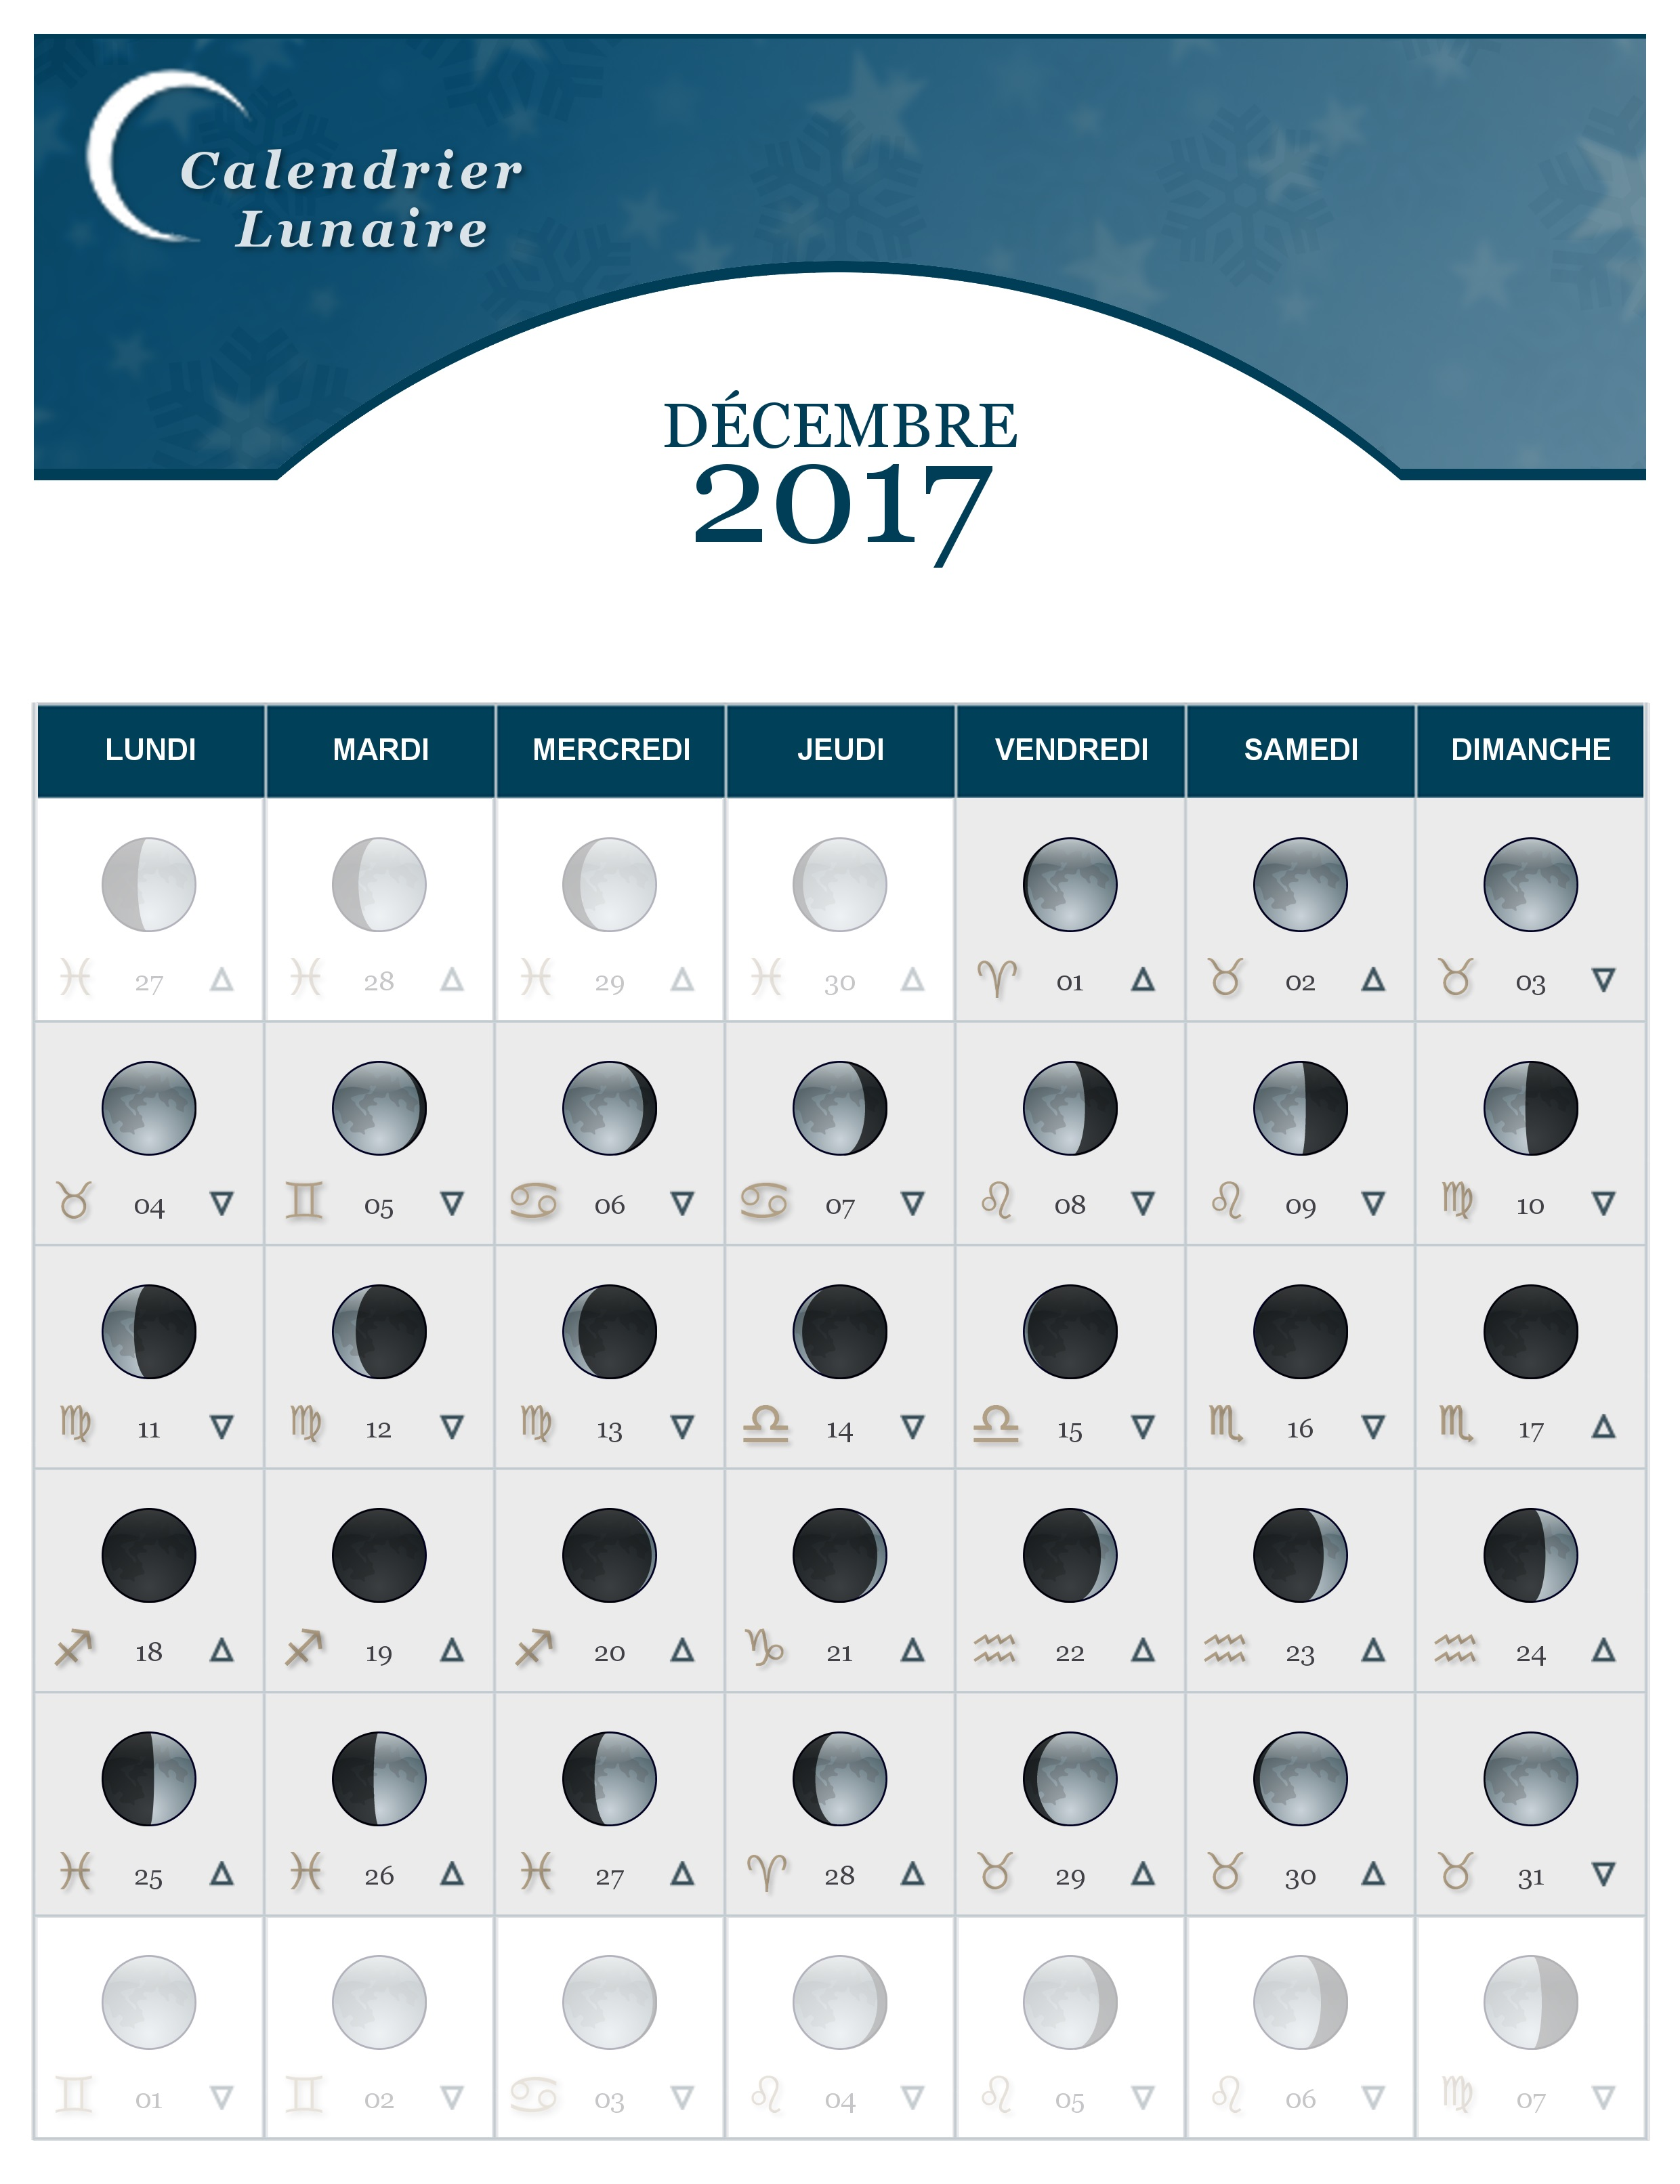 calendrier lunaire du mois de d cembre 2017 the lucky cath concept. Black Bedroom Furniture Sets. Home Design Ideas